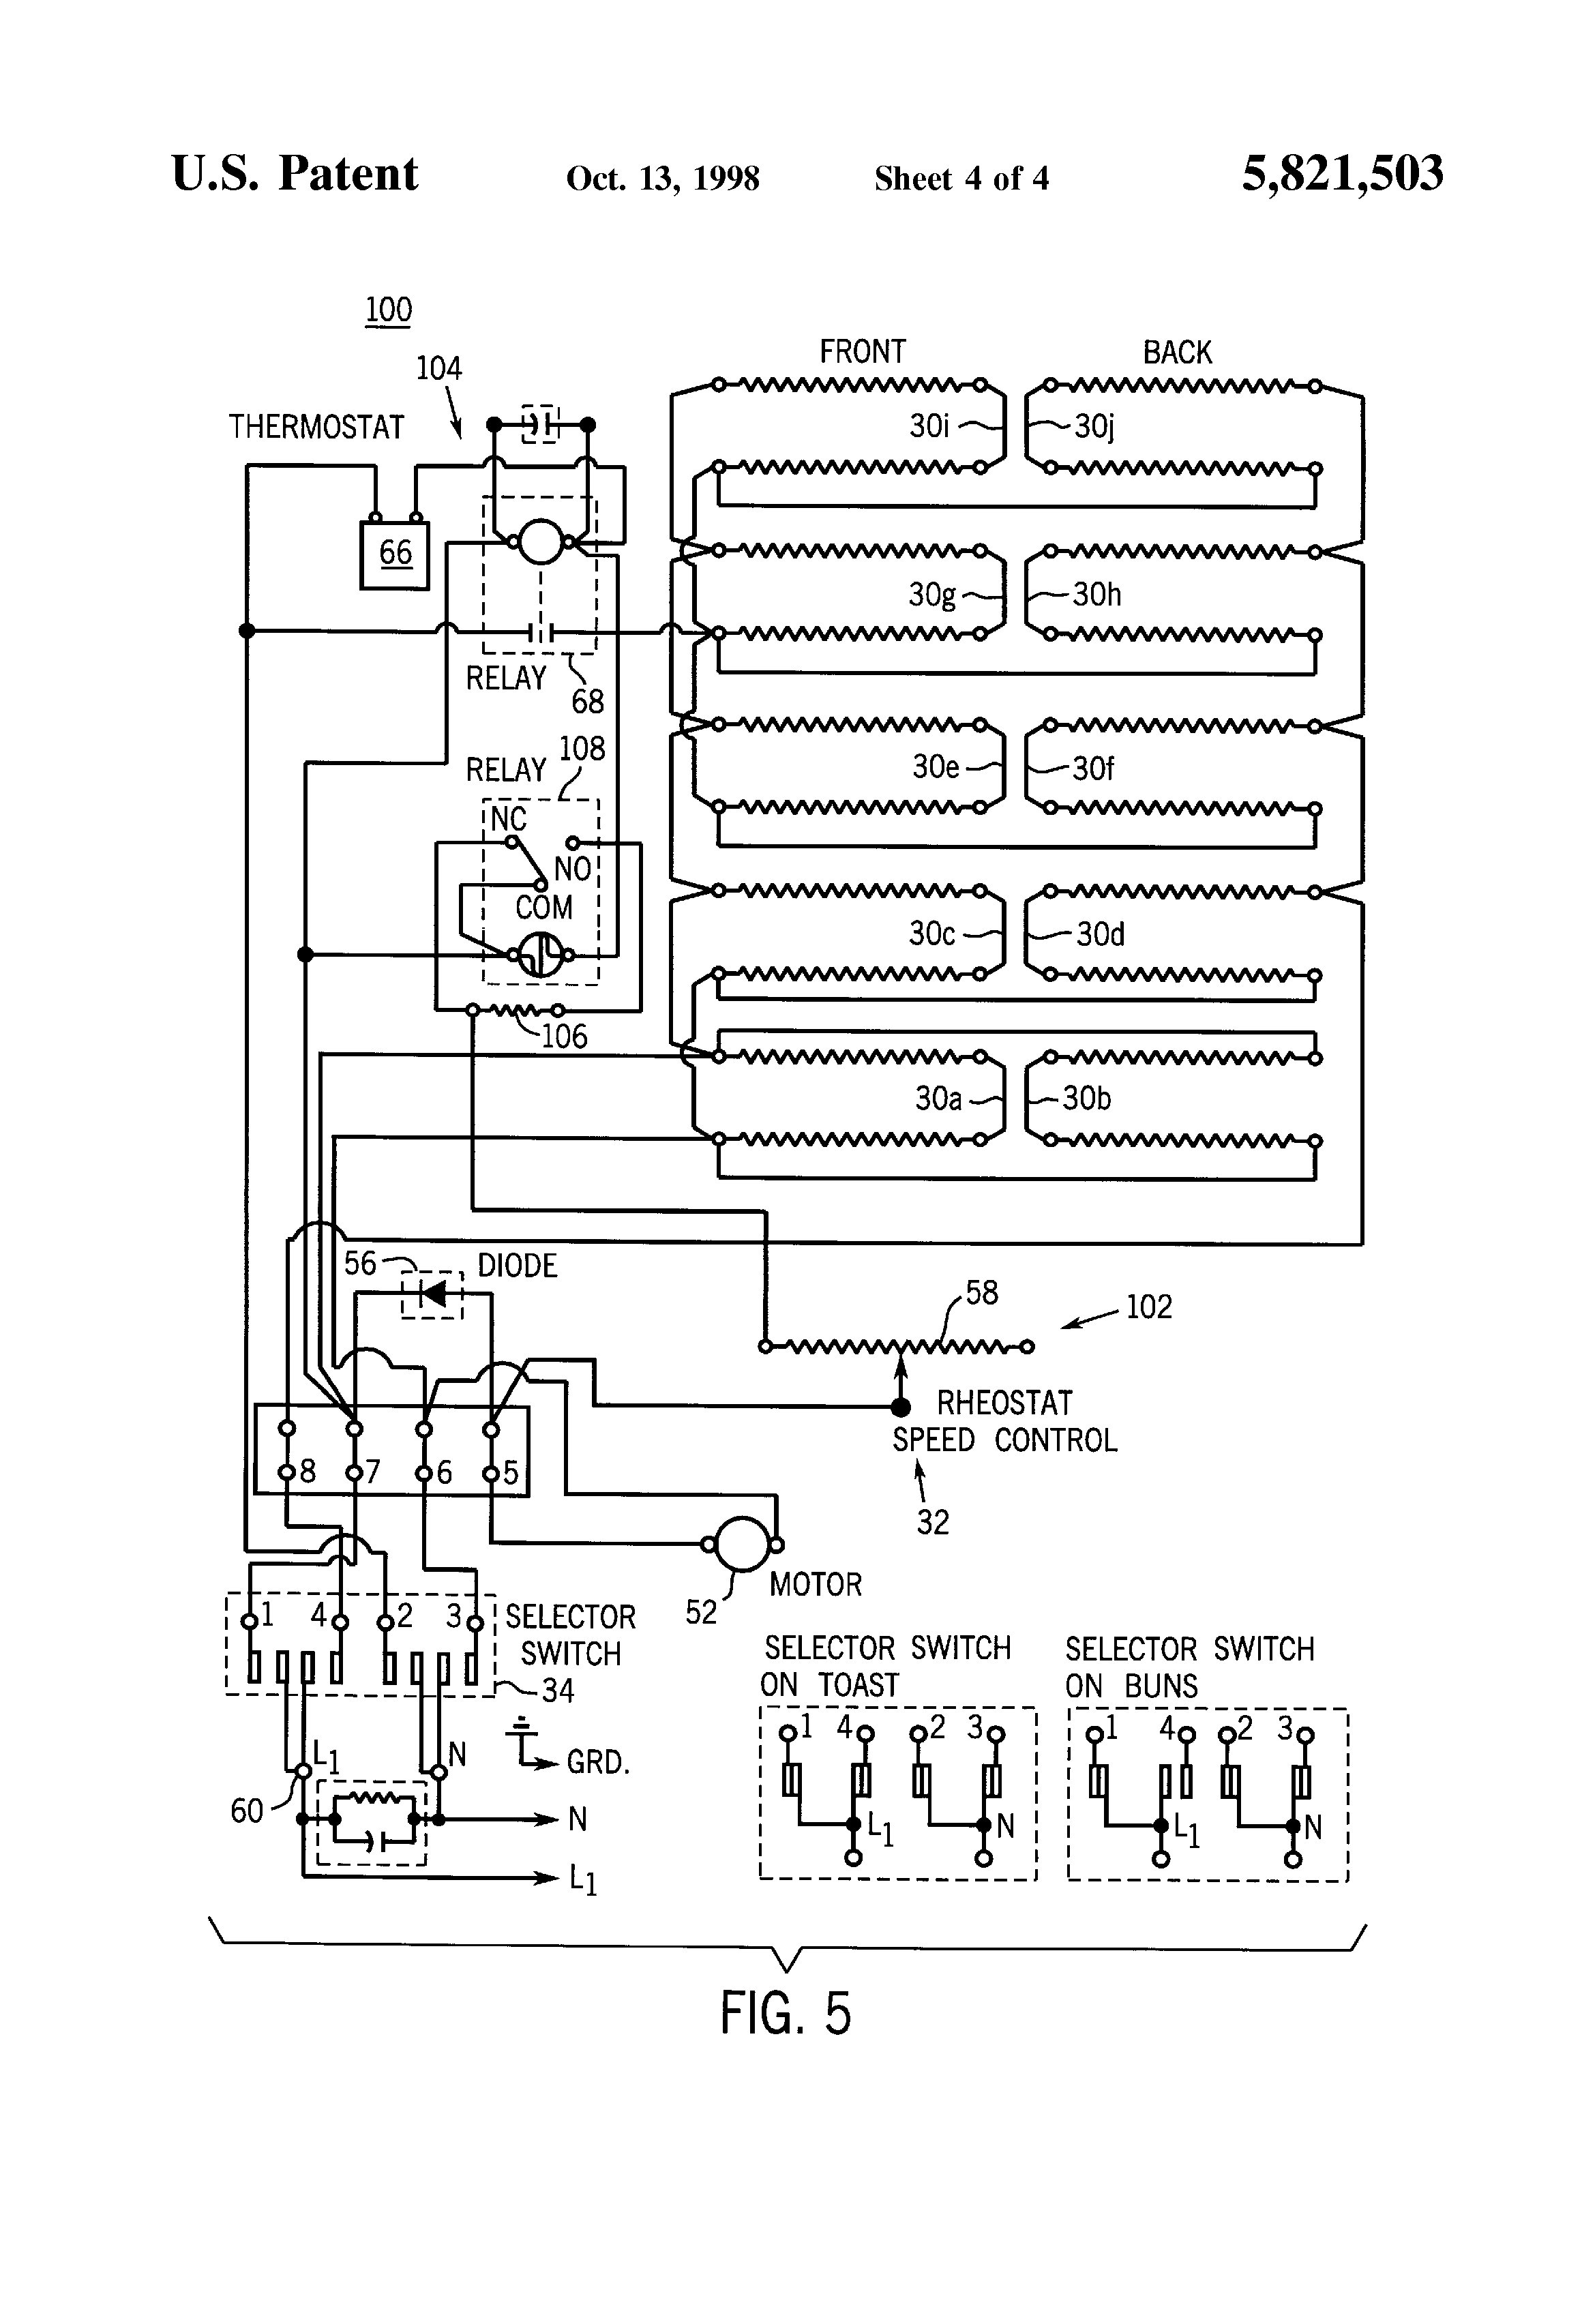 Wiring For Conveyors Great Design Of Diagram Four Pole Solenoid Patent Us5821503 Conveyor Speed Control Ciruit A 4 Light